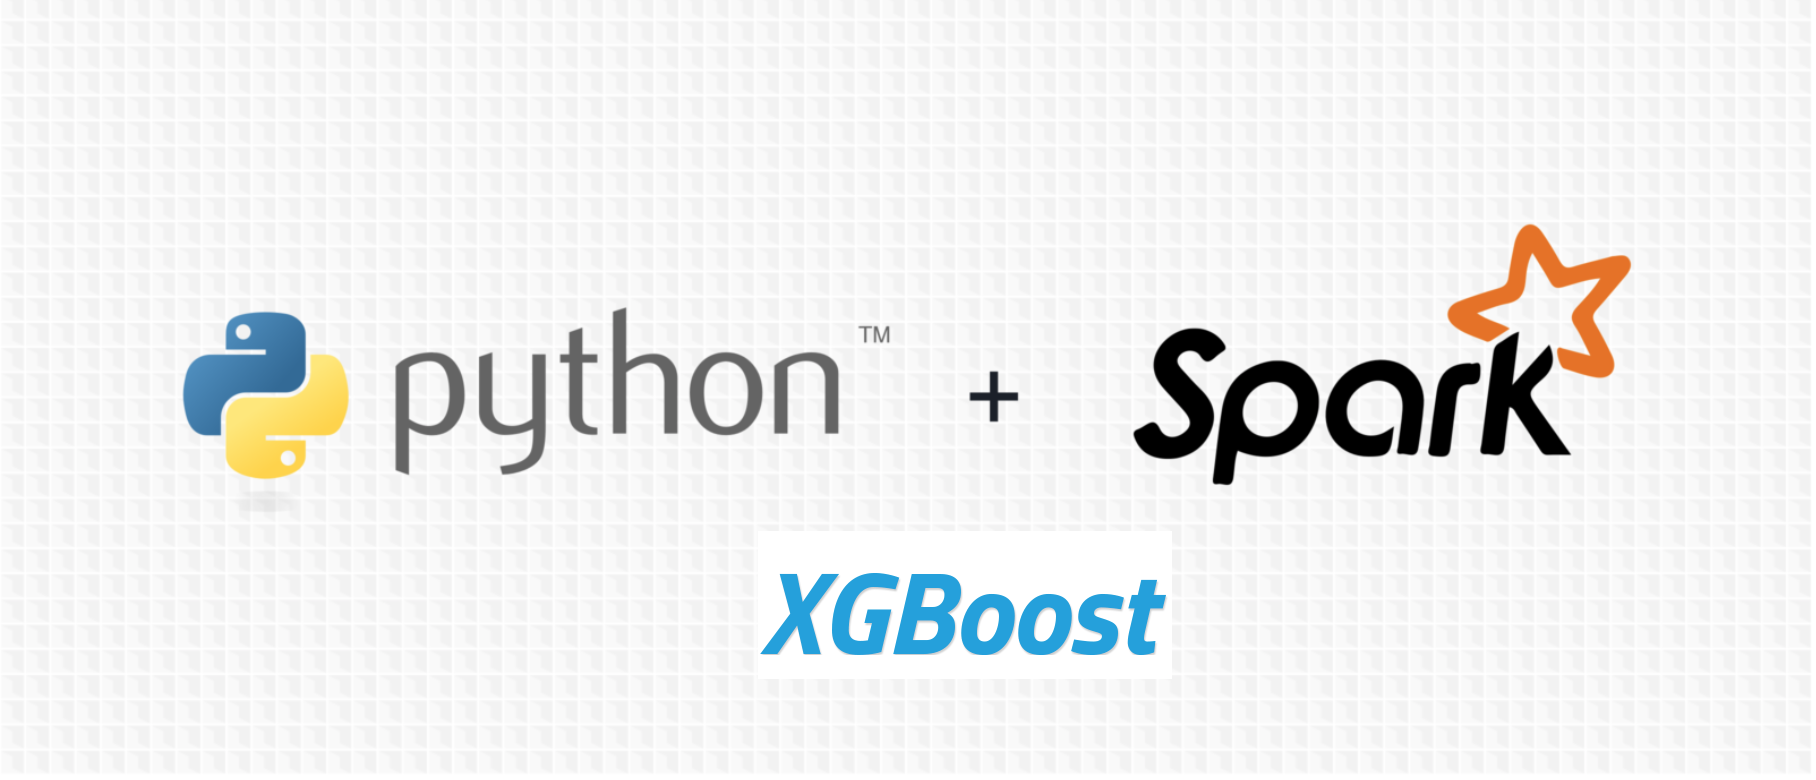 PySpark ML and XGBoost full integration tested on the Kaggle Titanic